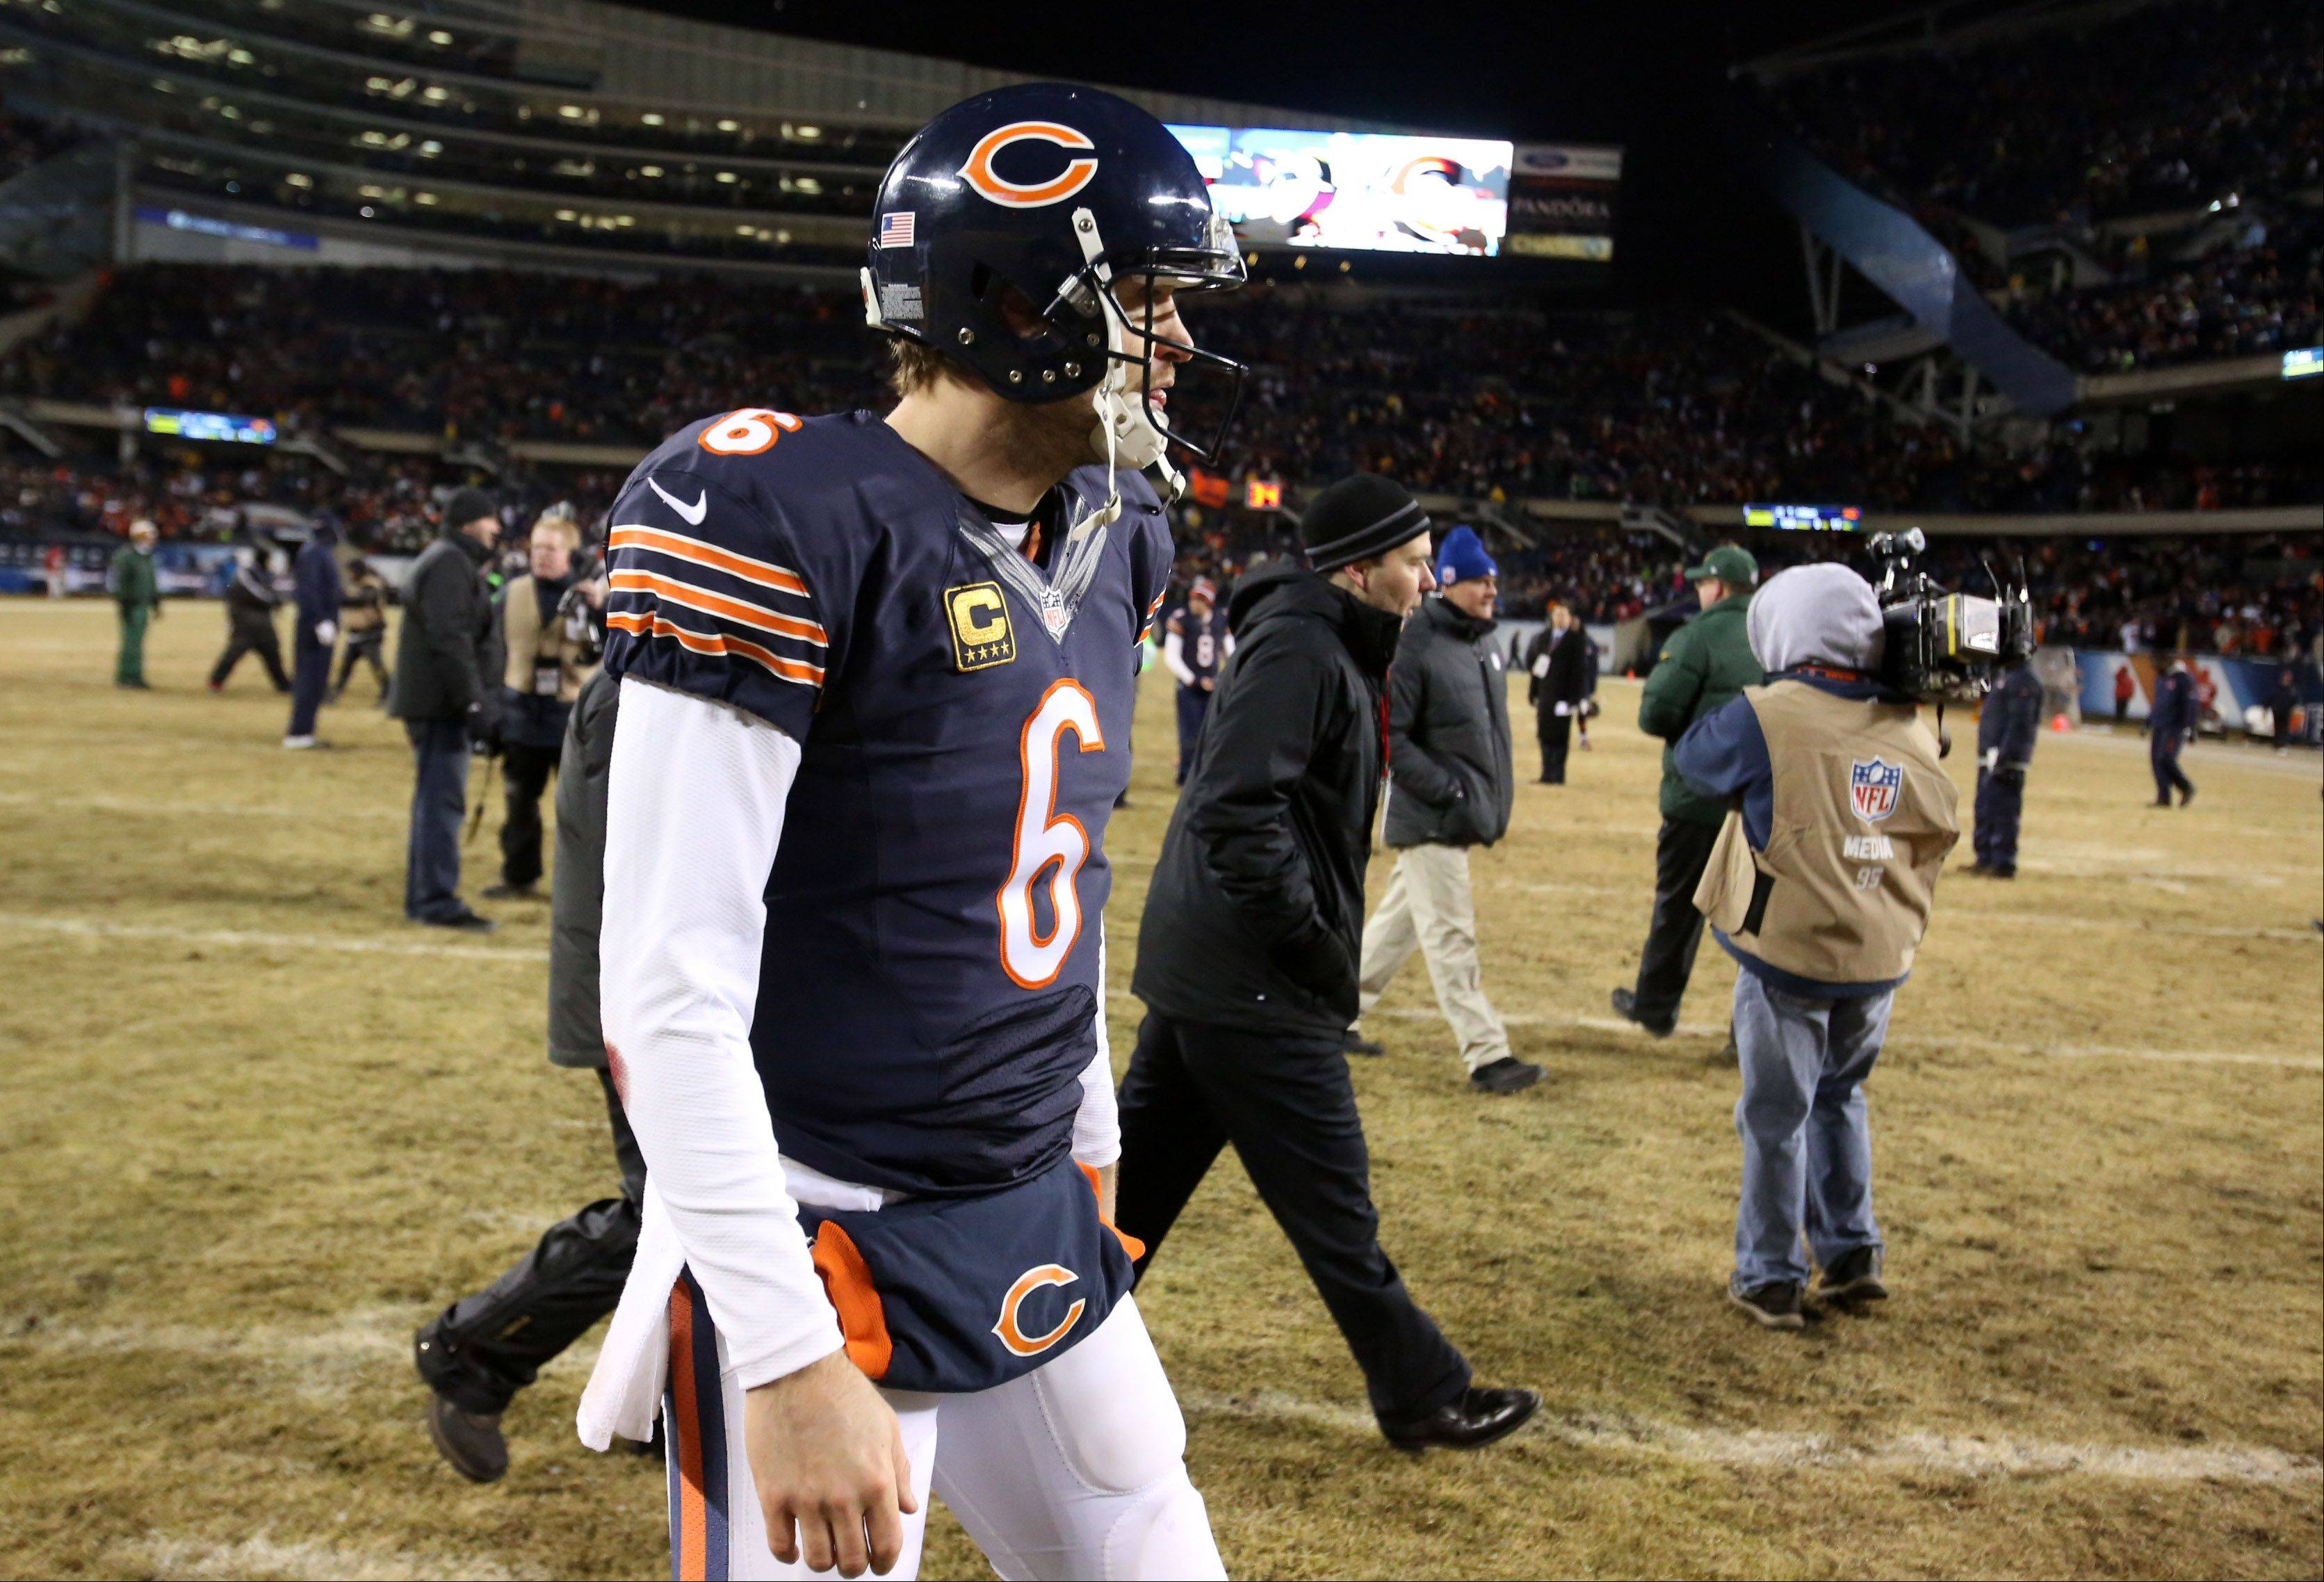 Chicago Bears quarterback Jay Cutler walks off the field after losing to the Green Bay Packers 33-28 on Sunday at Soldier Field in Chicago.